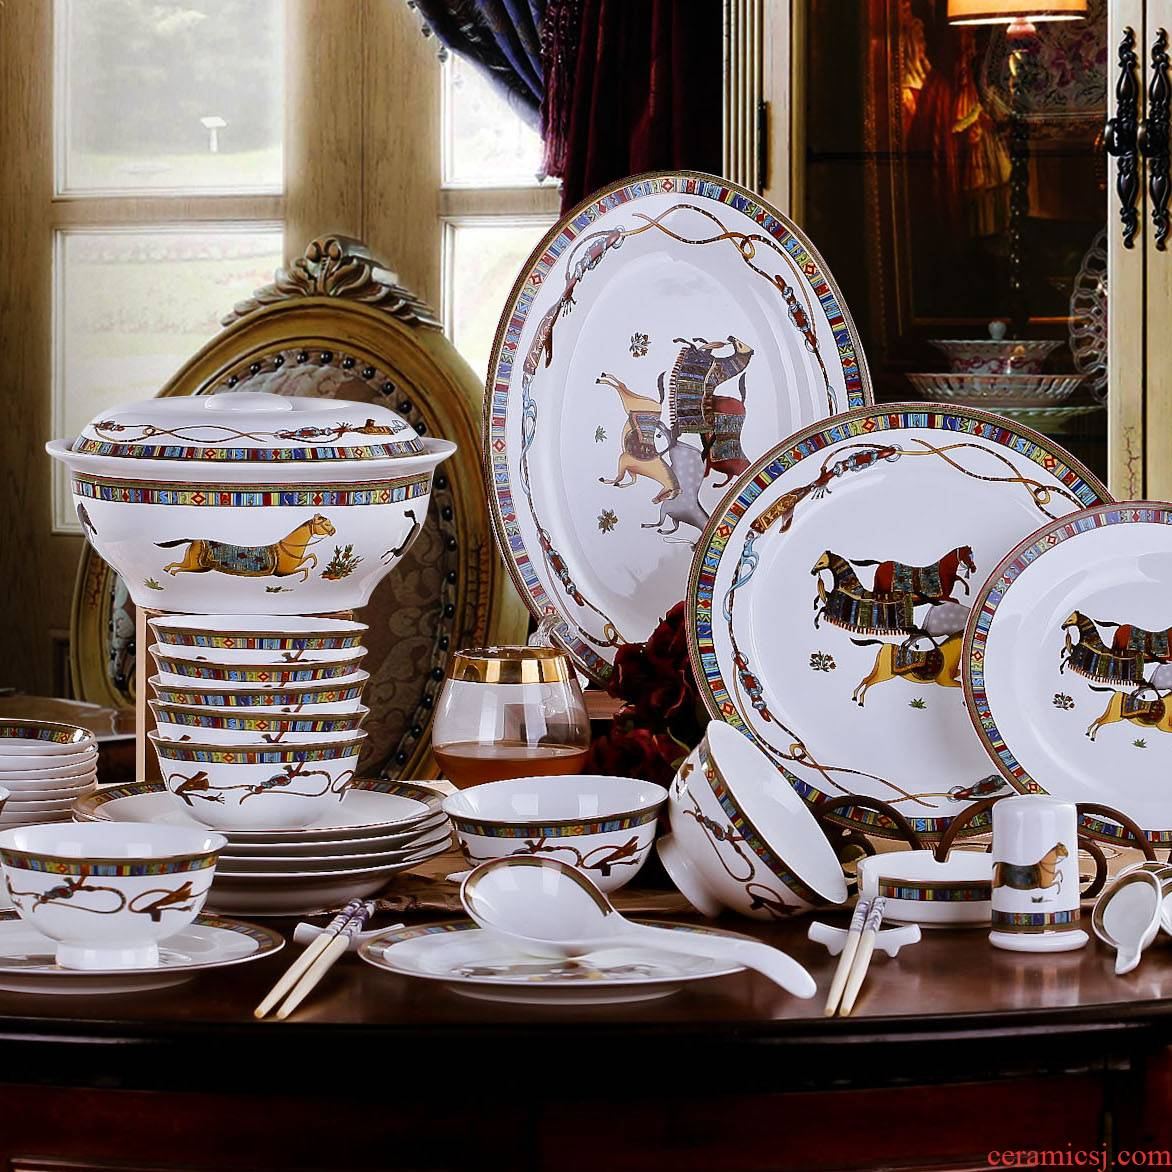 Treasure dishes dishes household of Chinese style ceramic tableware suit at the South Pole plate composite ipads China gift boxes/European bowls bowl